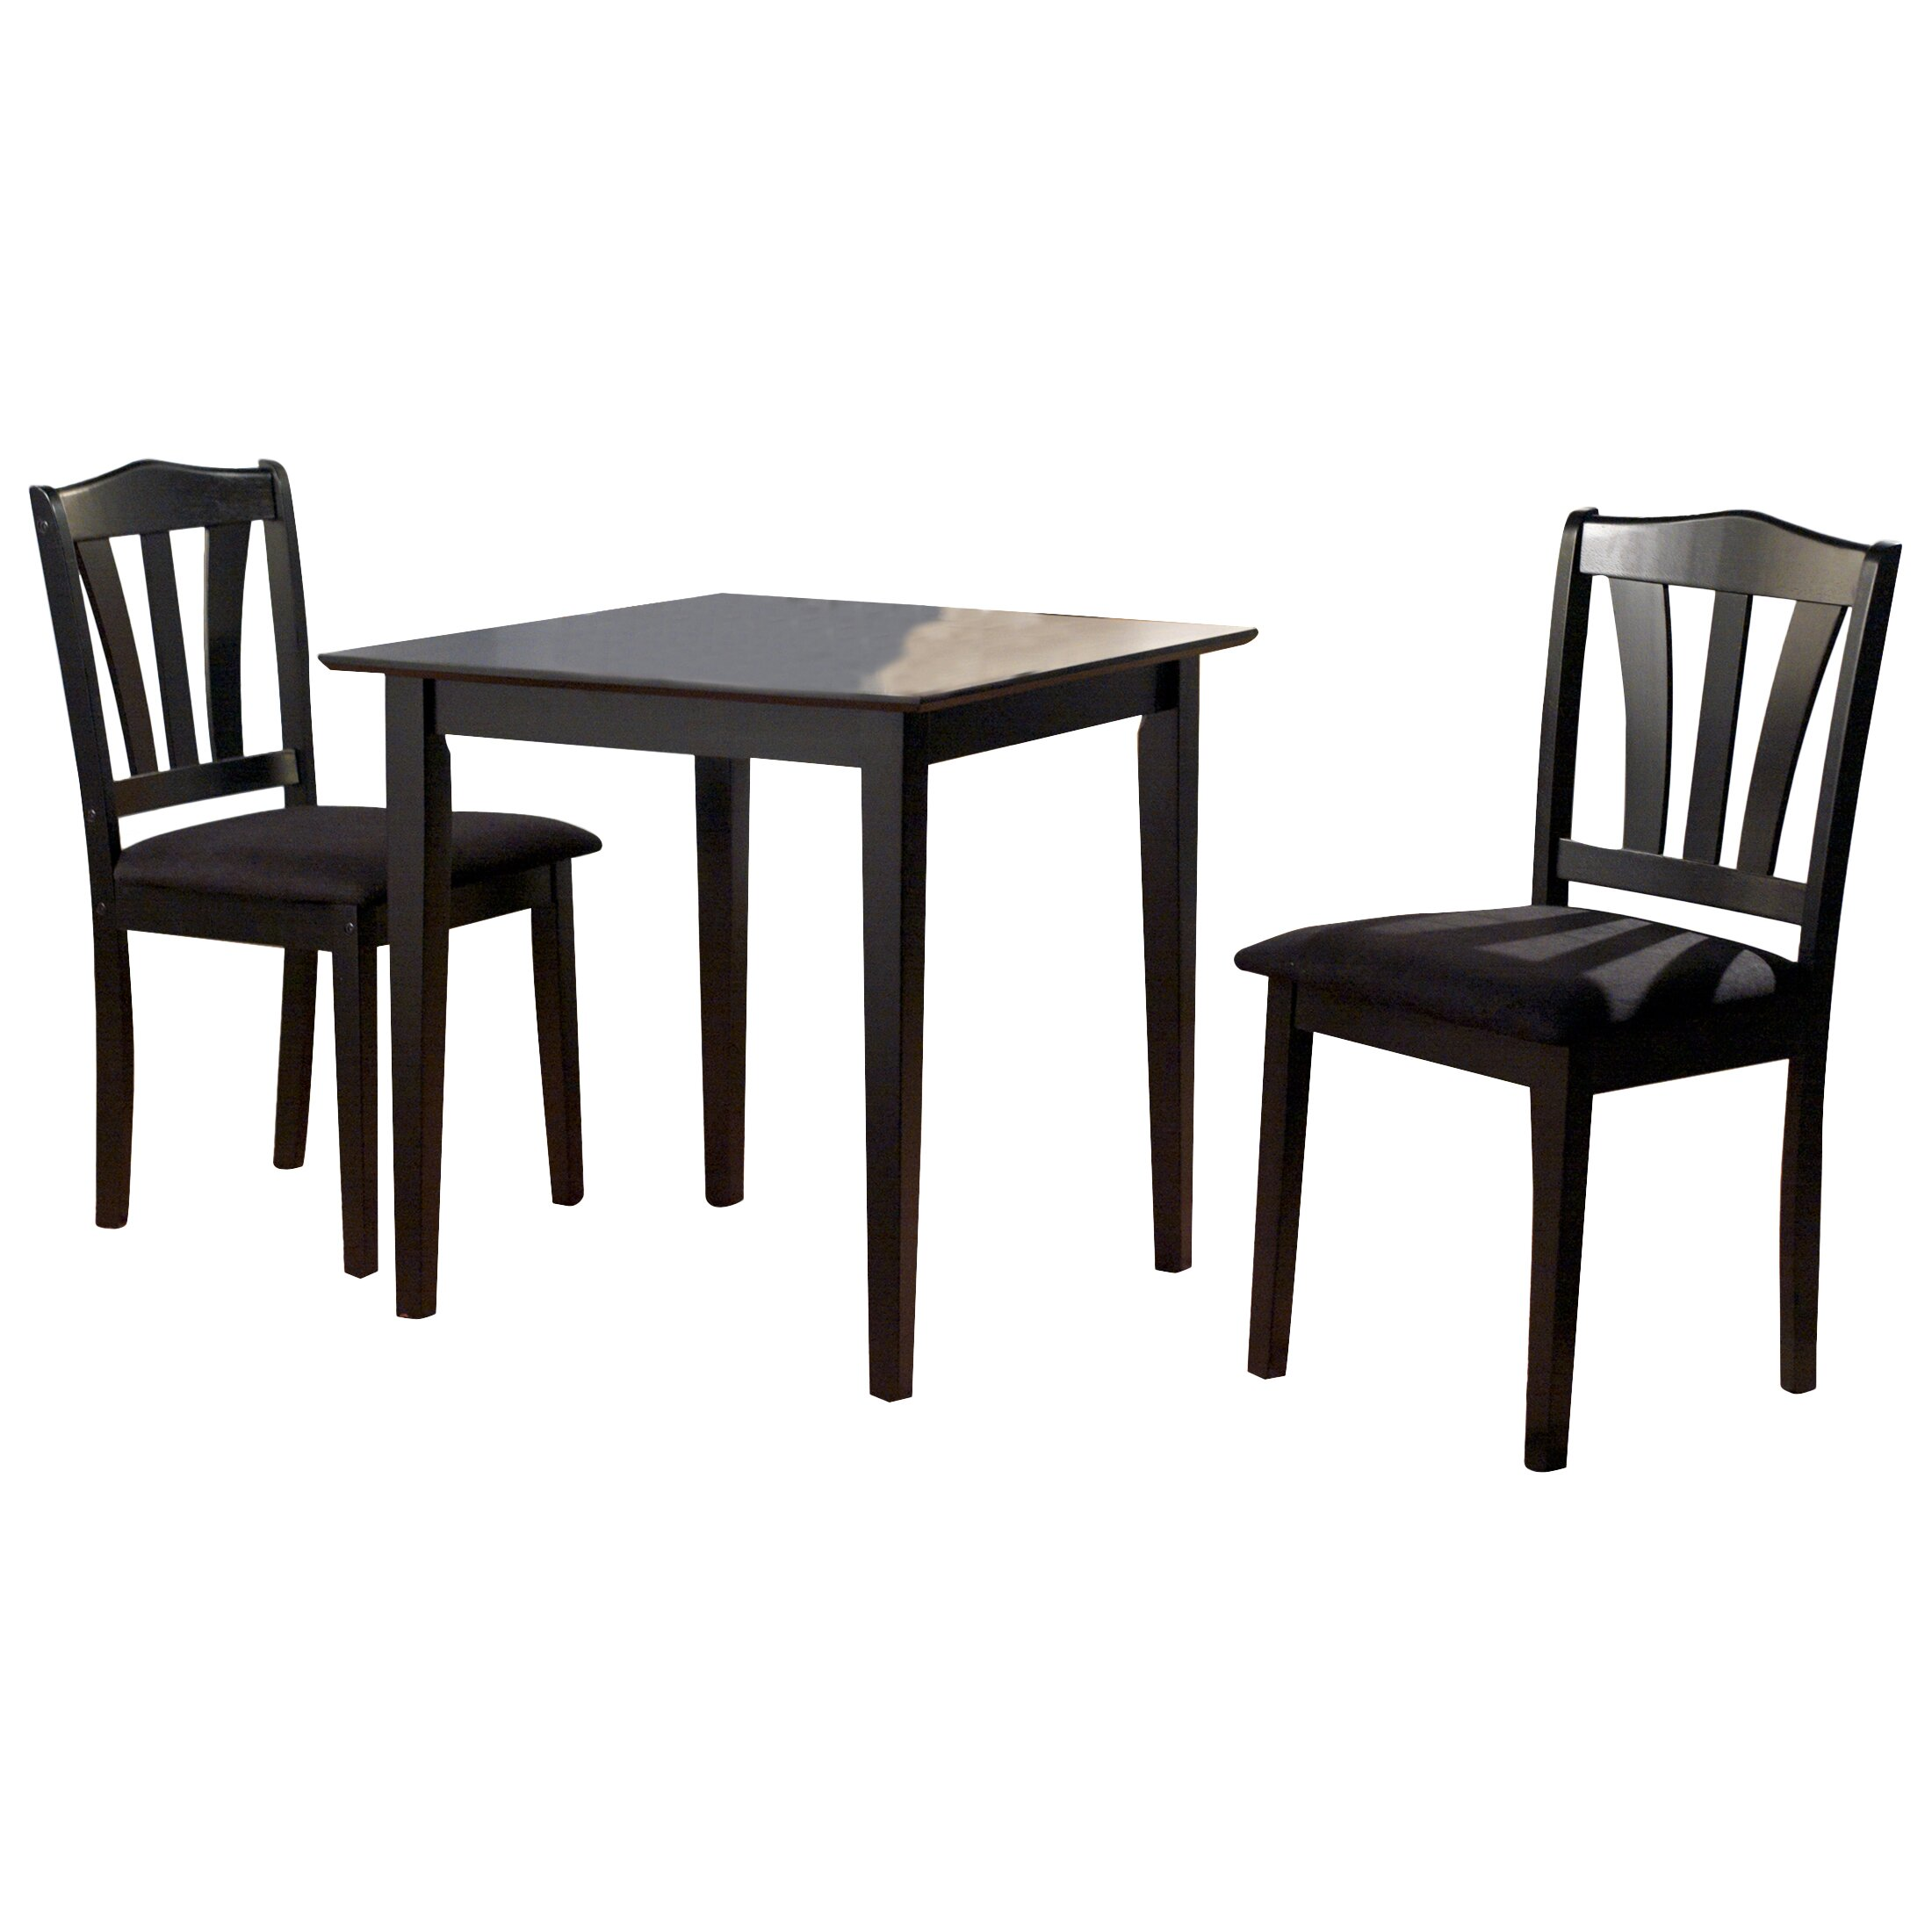 Alcott Hill Dinah 3 Piece Dining Set Amp Reviews Wayfair